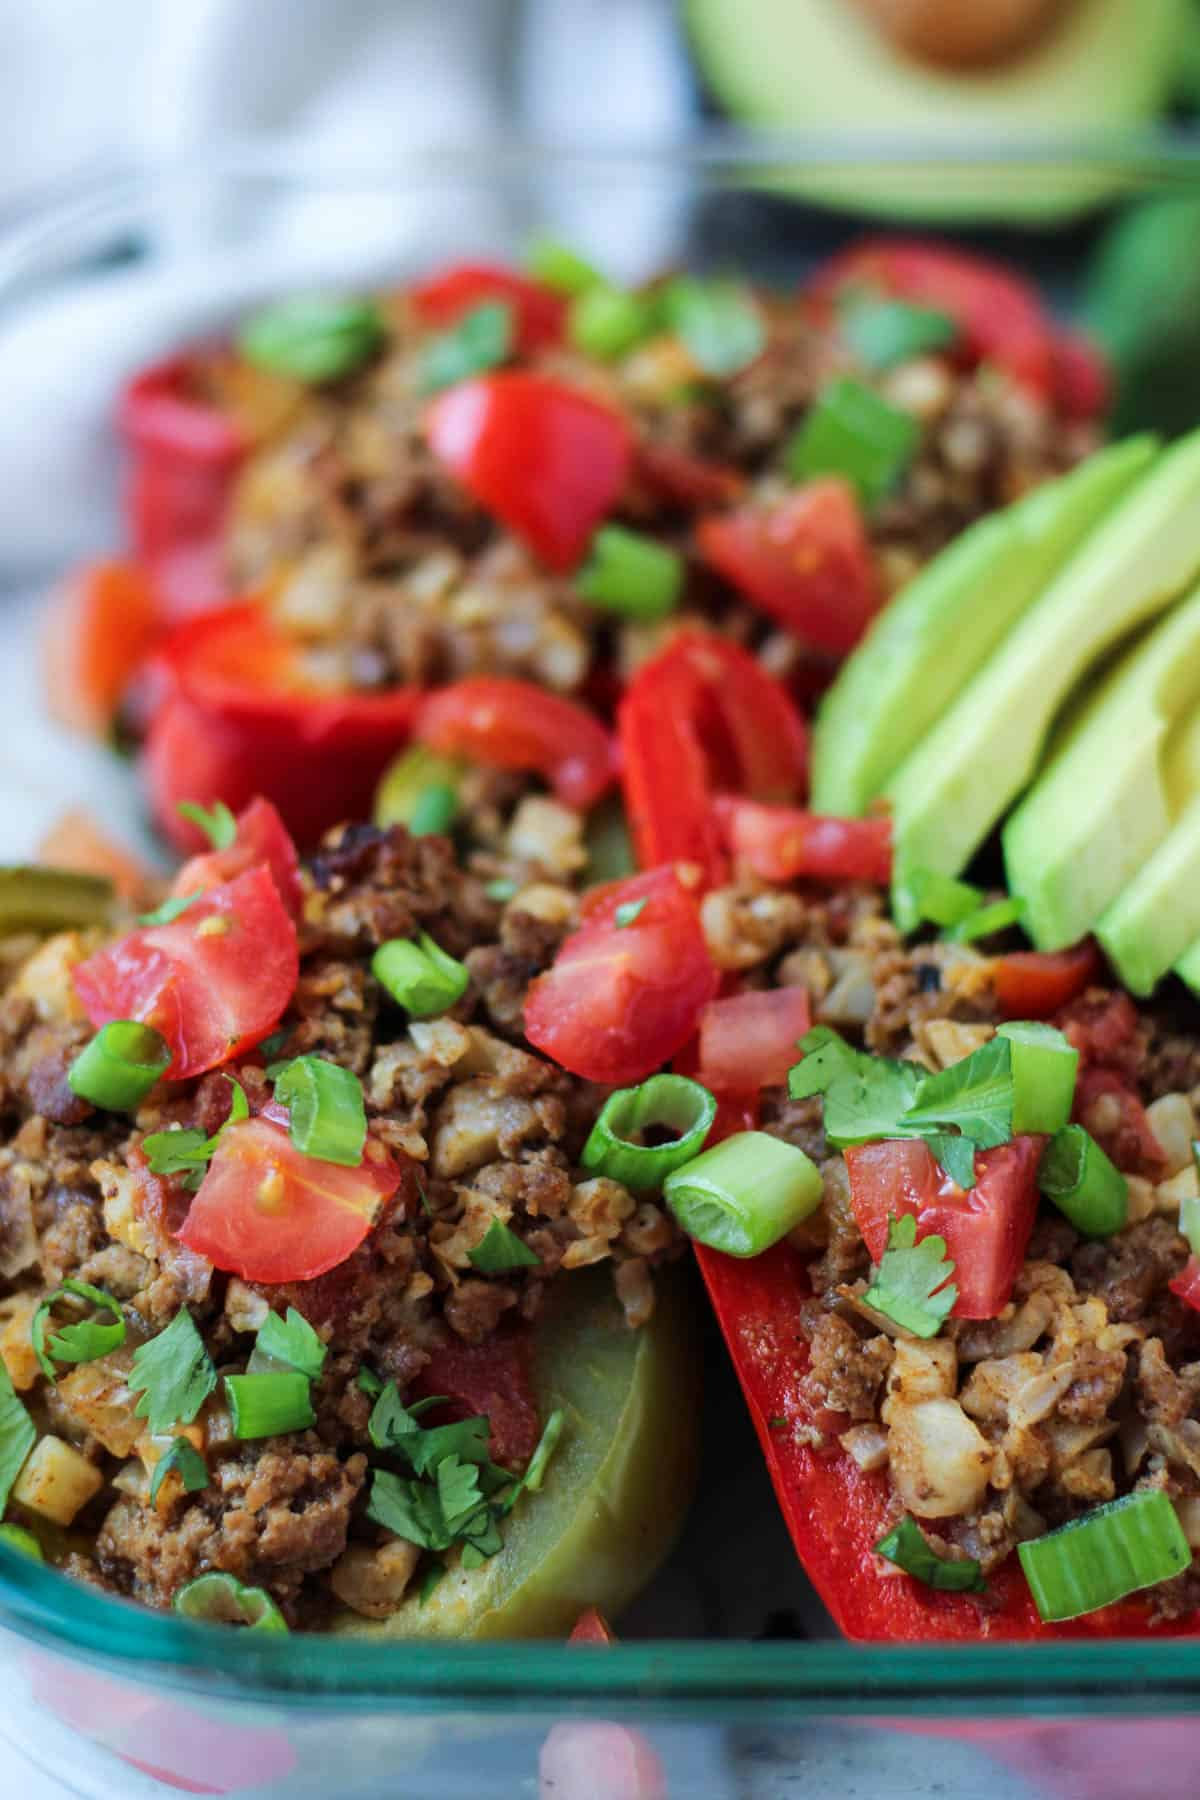 TheseBeef & Rice Stuffed Peppers are stuffed with cauliflower rice and Mexican spices for an easy paleo and Whole30 approved dish - Eat the Gains